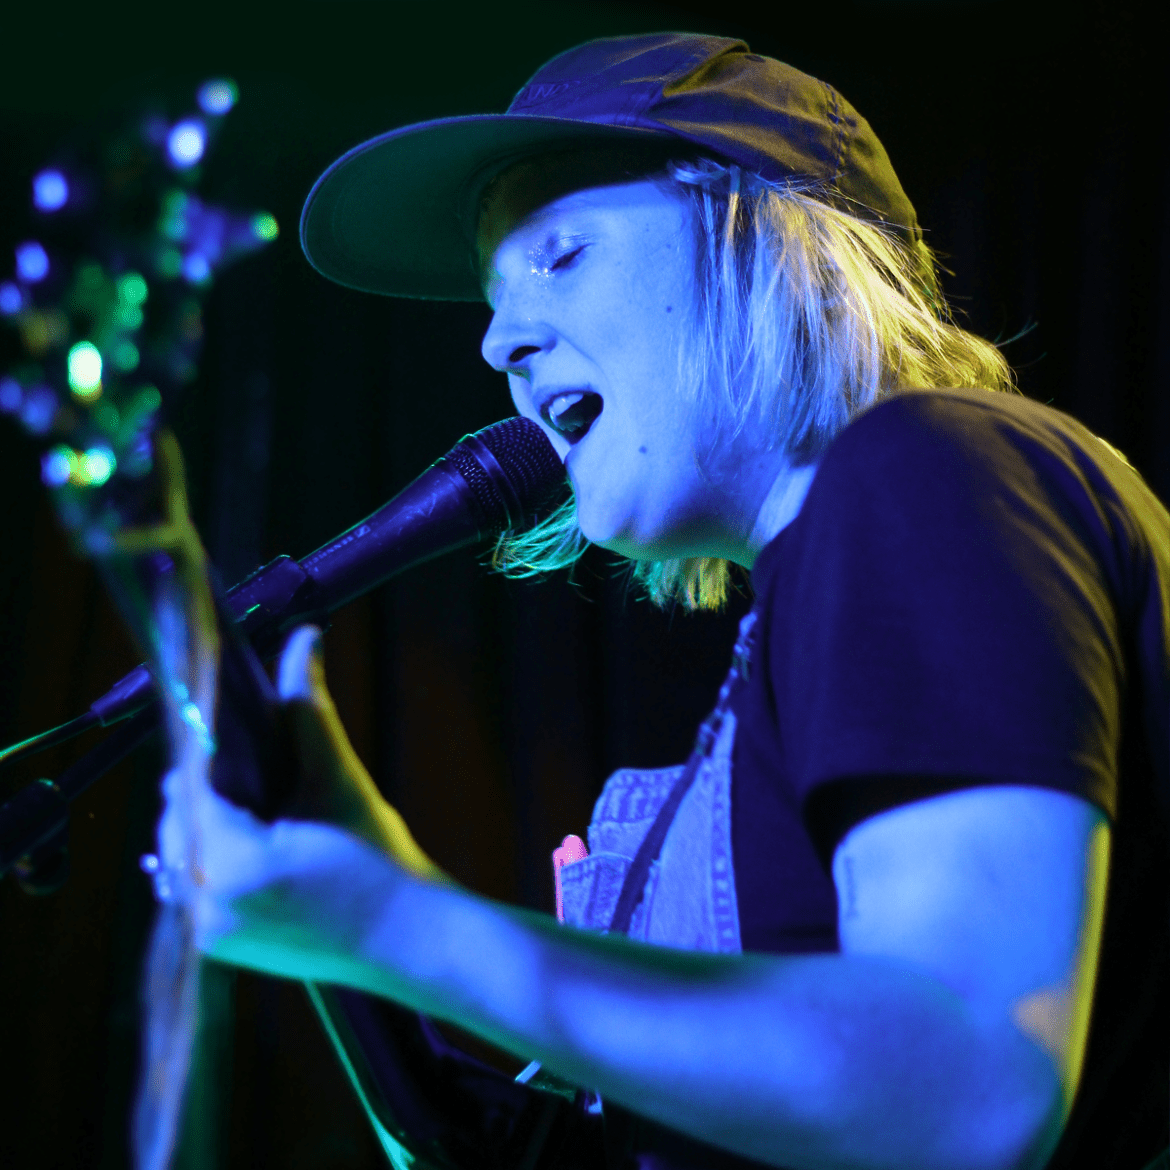 Penelope Isles playing Hidden Herd vs Lost In The Manor at The Finsbury in London on 17.03.16